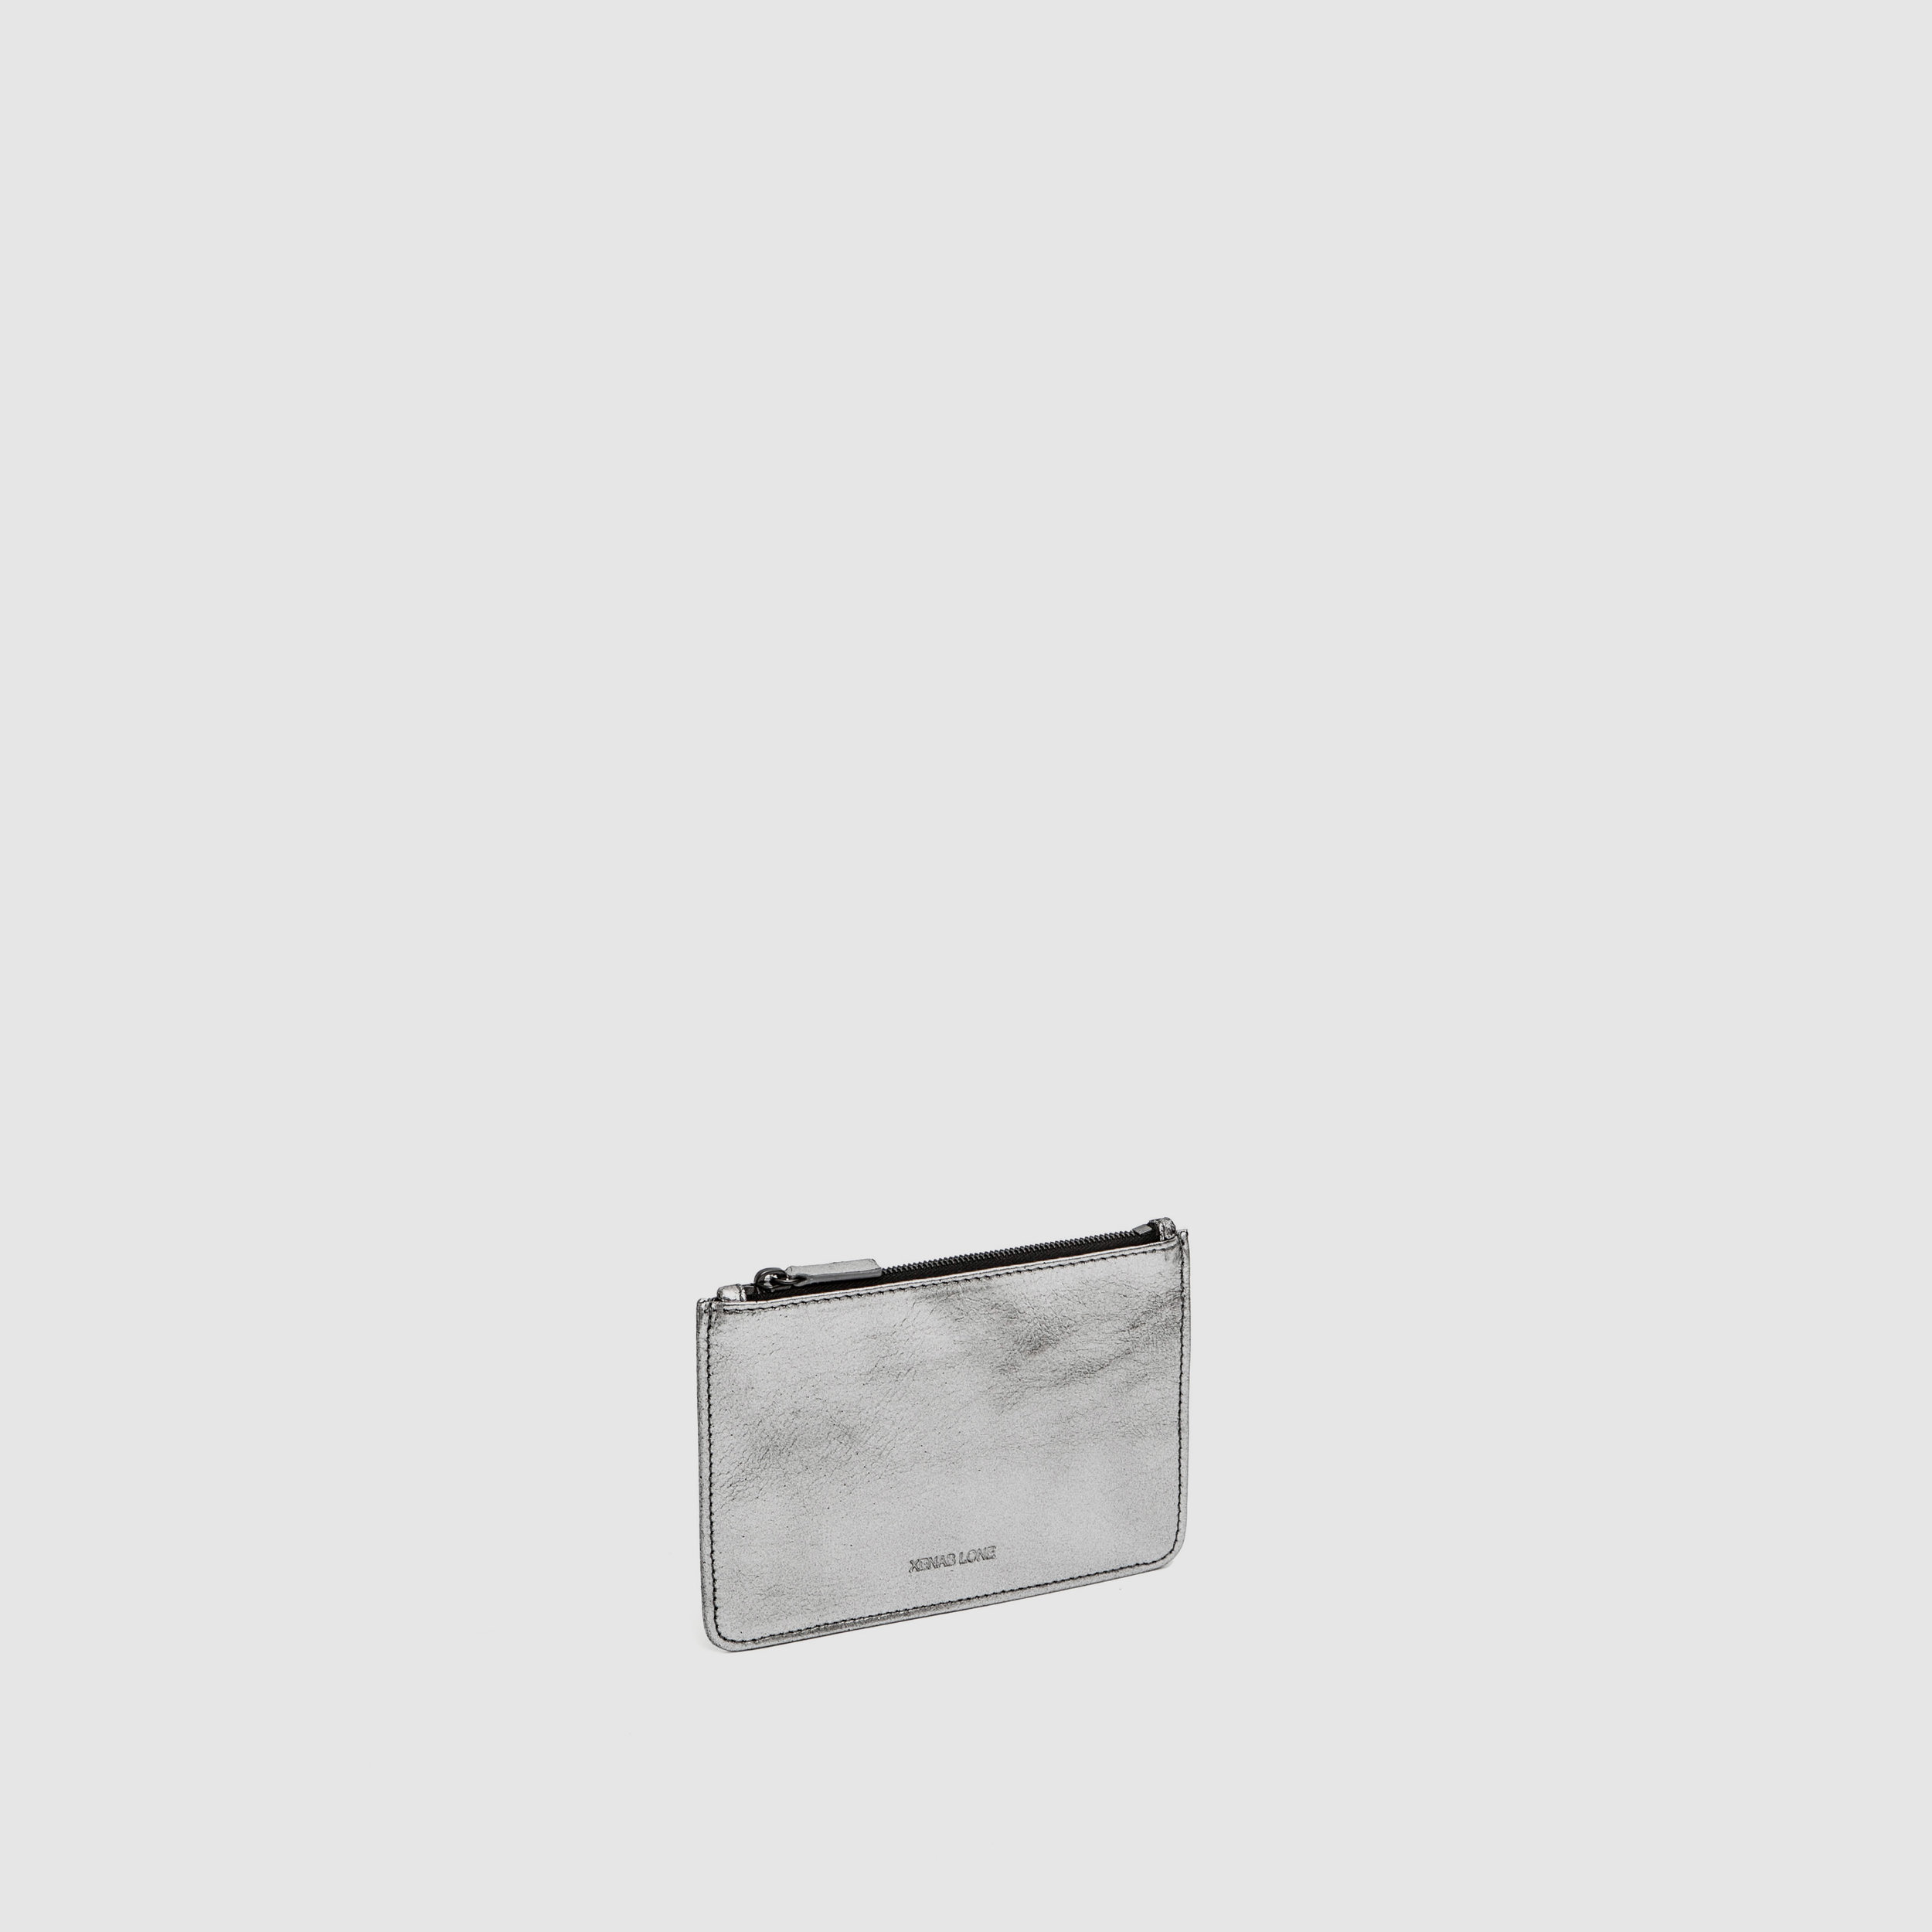 Wallets&Pouches_0000s_0000_Layer 49.jpg